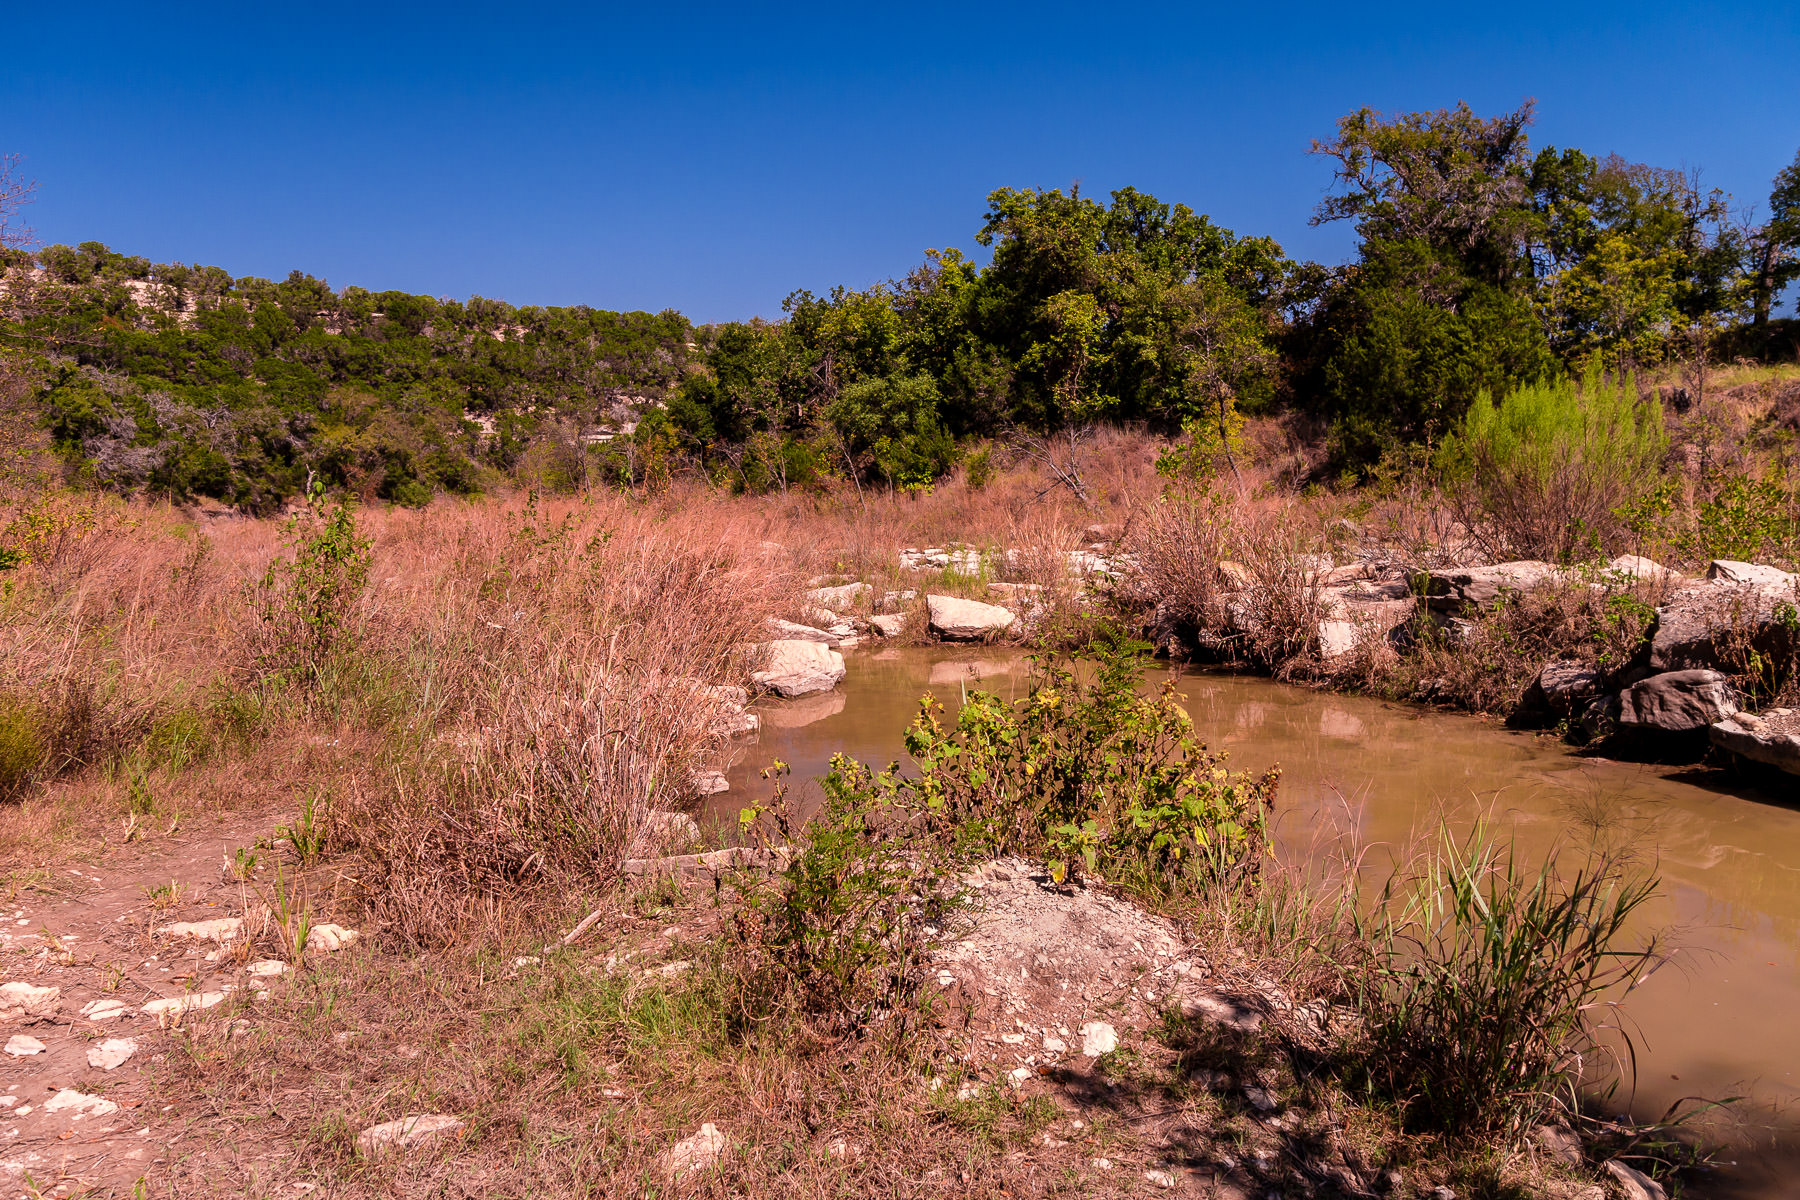 The Paluxy River runs almost dry at Dinosaur Valley State Park, Texas.